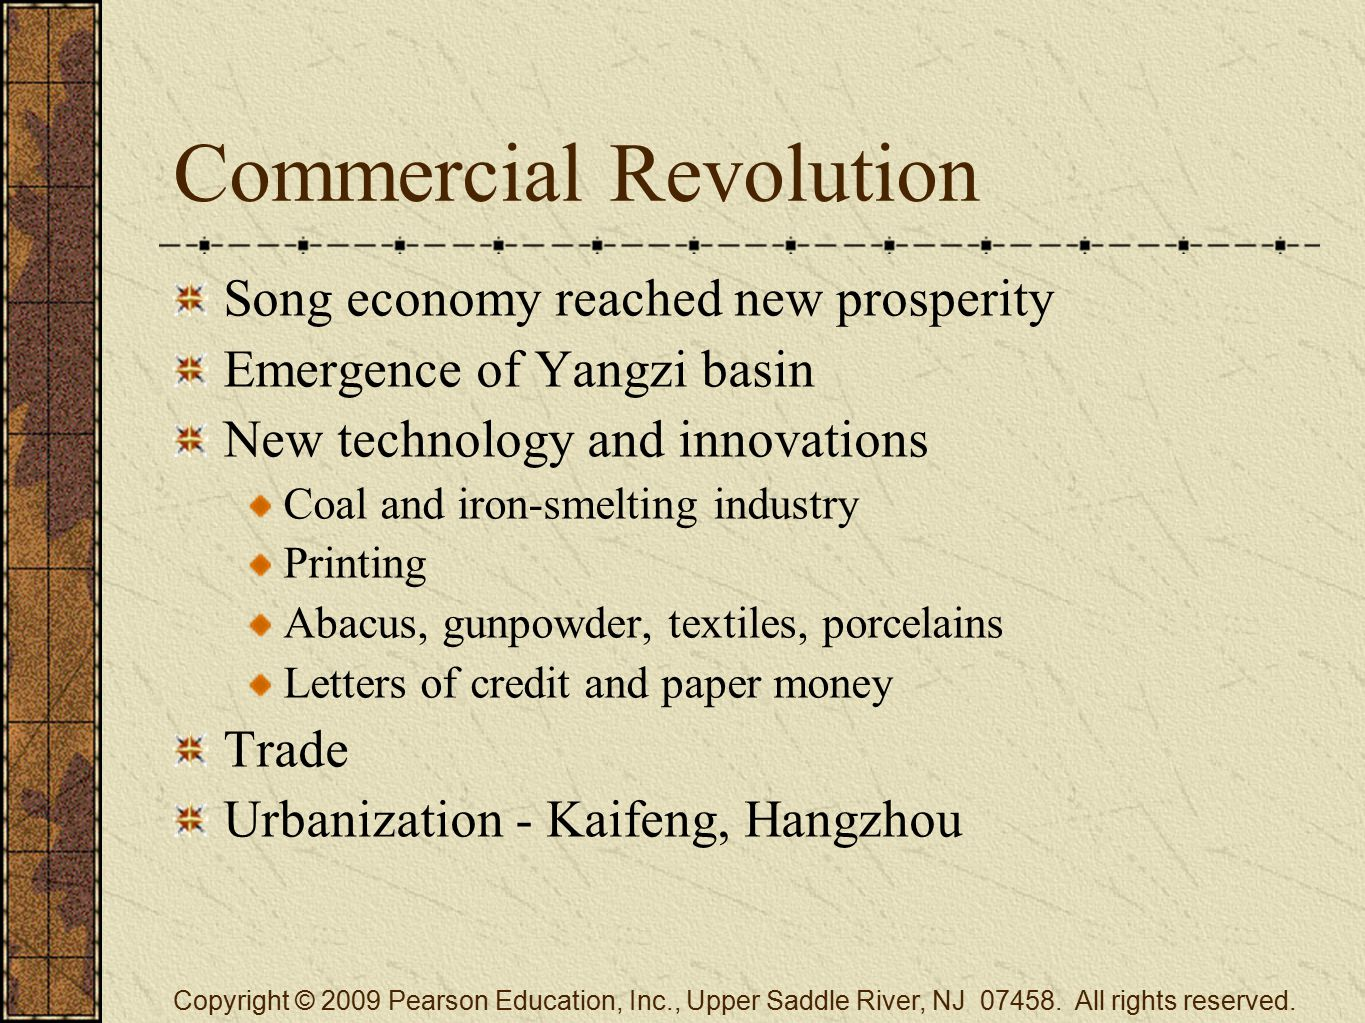 Commercial Revolution Song economy reached new prosperity Emergence of Yangzi basin New technology and innovations Coal and iron-smelting industry Printing Abacus, gunpowder, textiles, porcelains Letters of credit and paper money Trade Urbanization - Kaifeng, Hangzhou Copyright © 2009 Pearson Education, Inc., Upper Saddle River, NJ 07458.